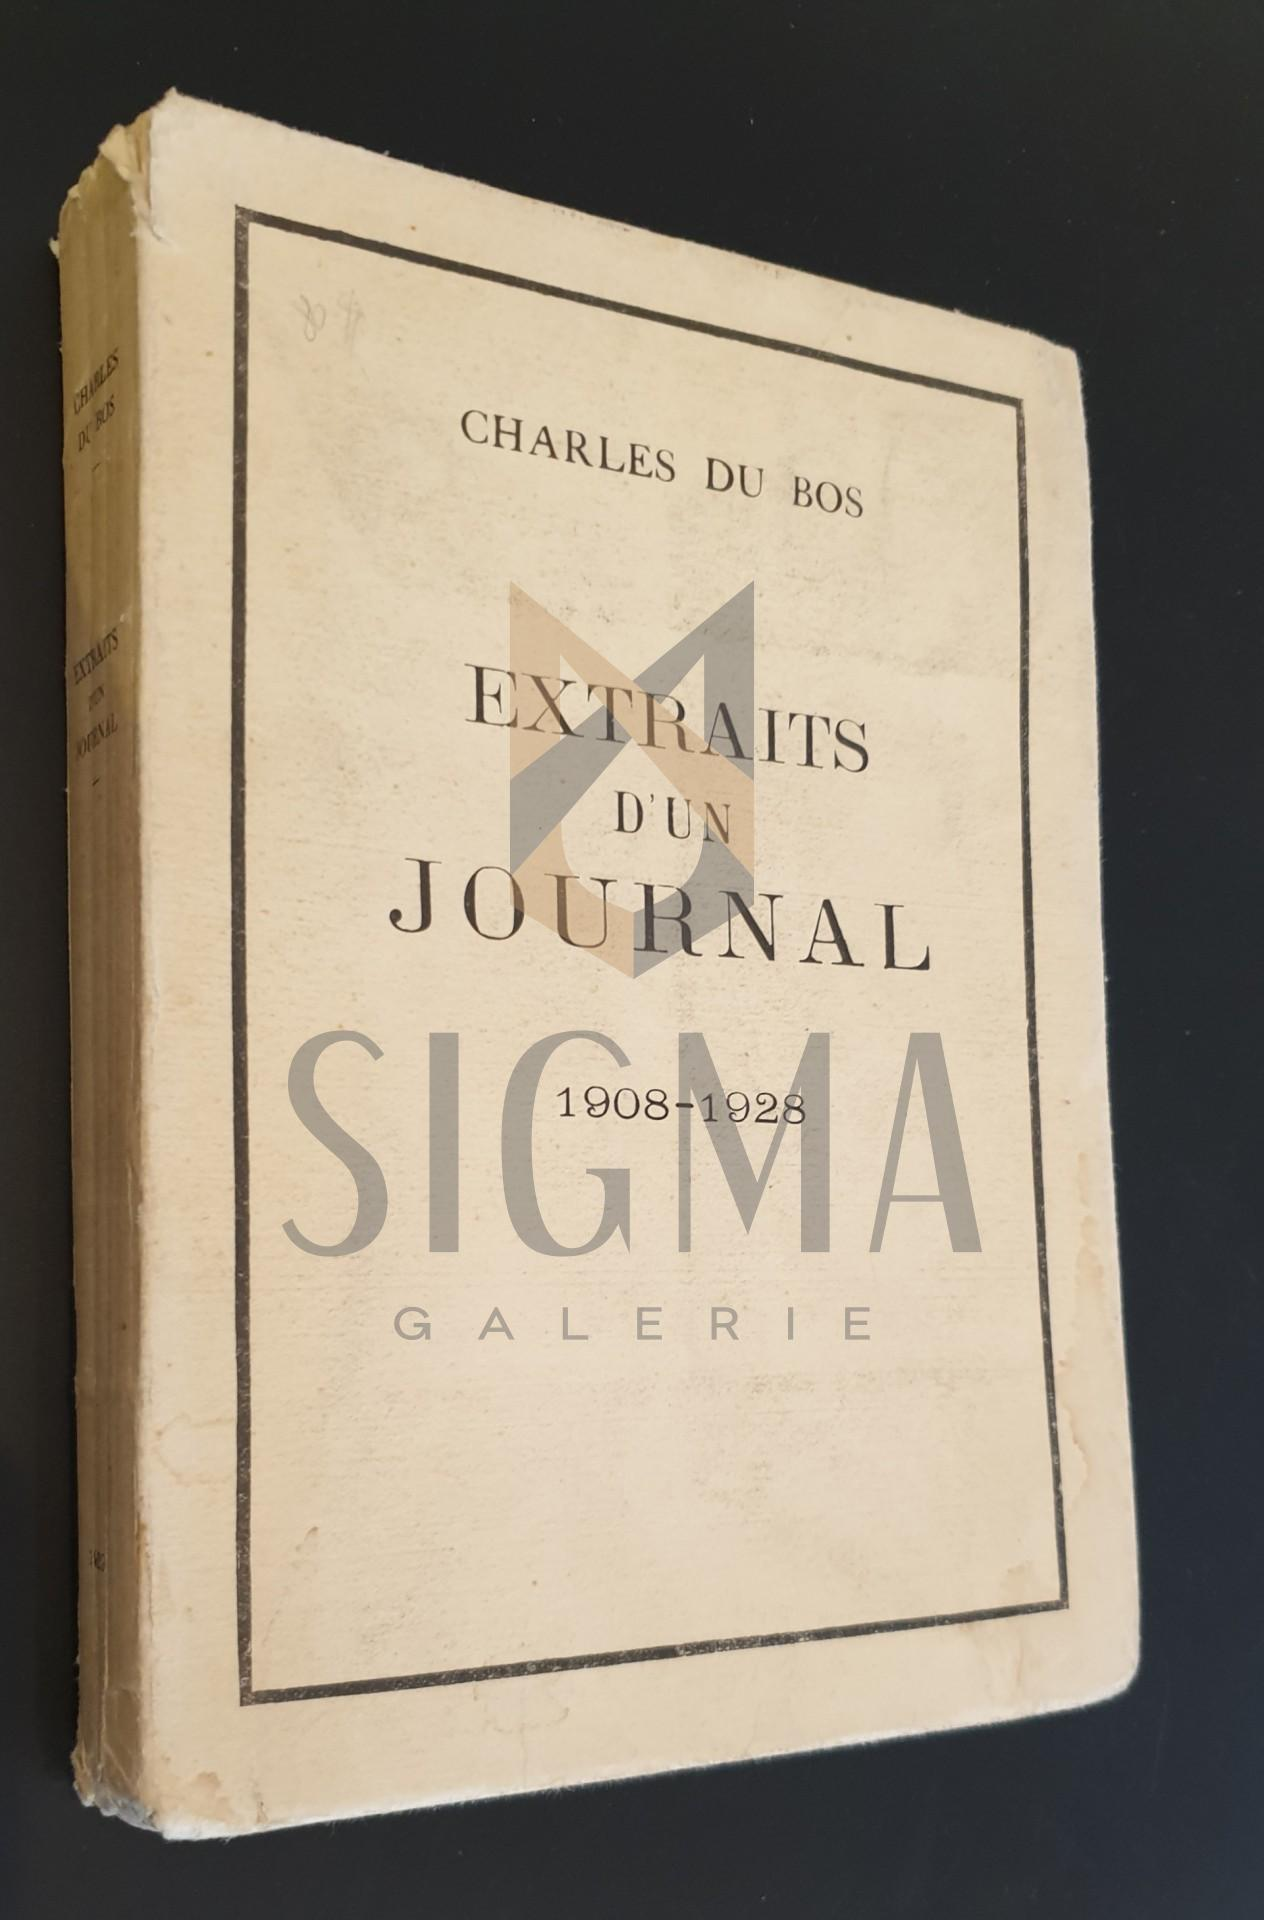 EXTRAIS D US JOURNAL 1908-1928